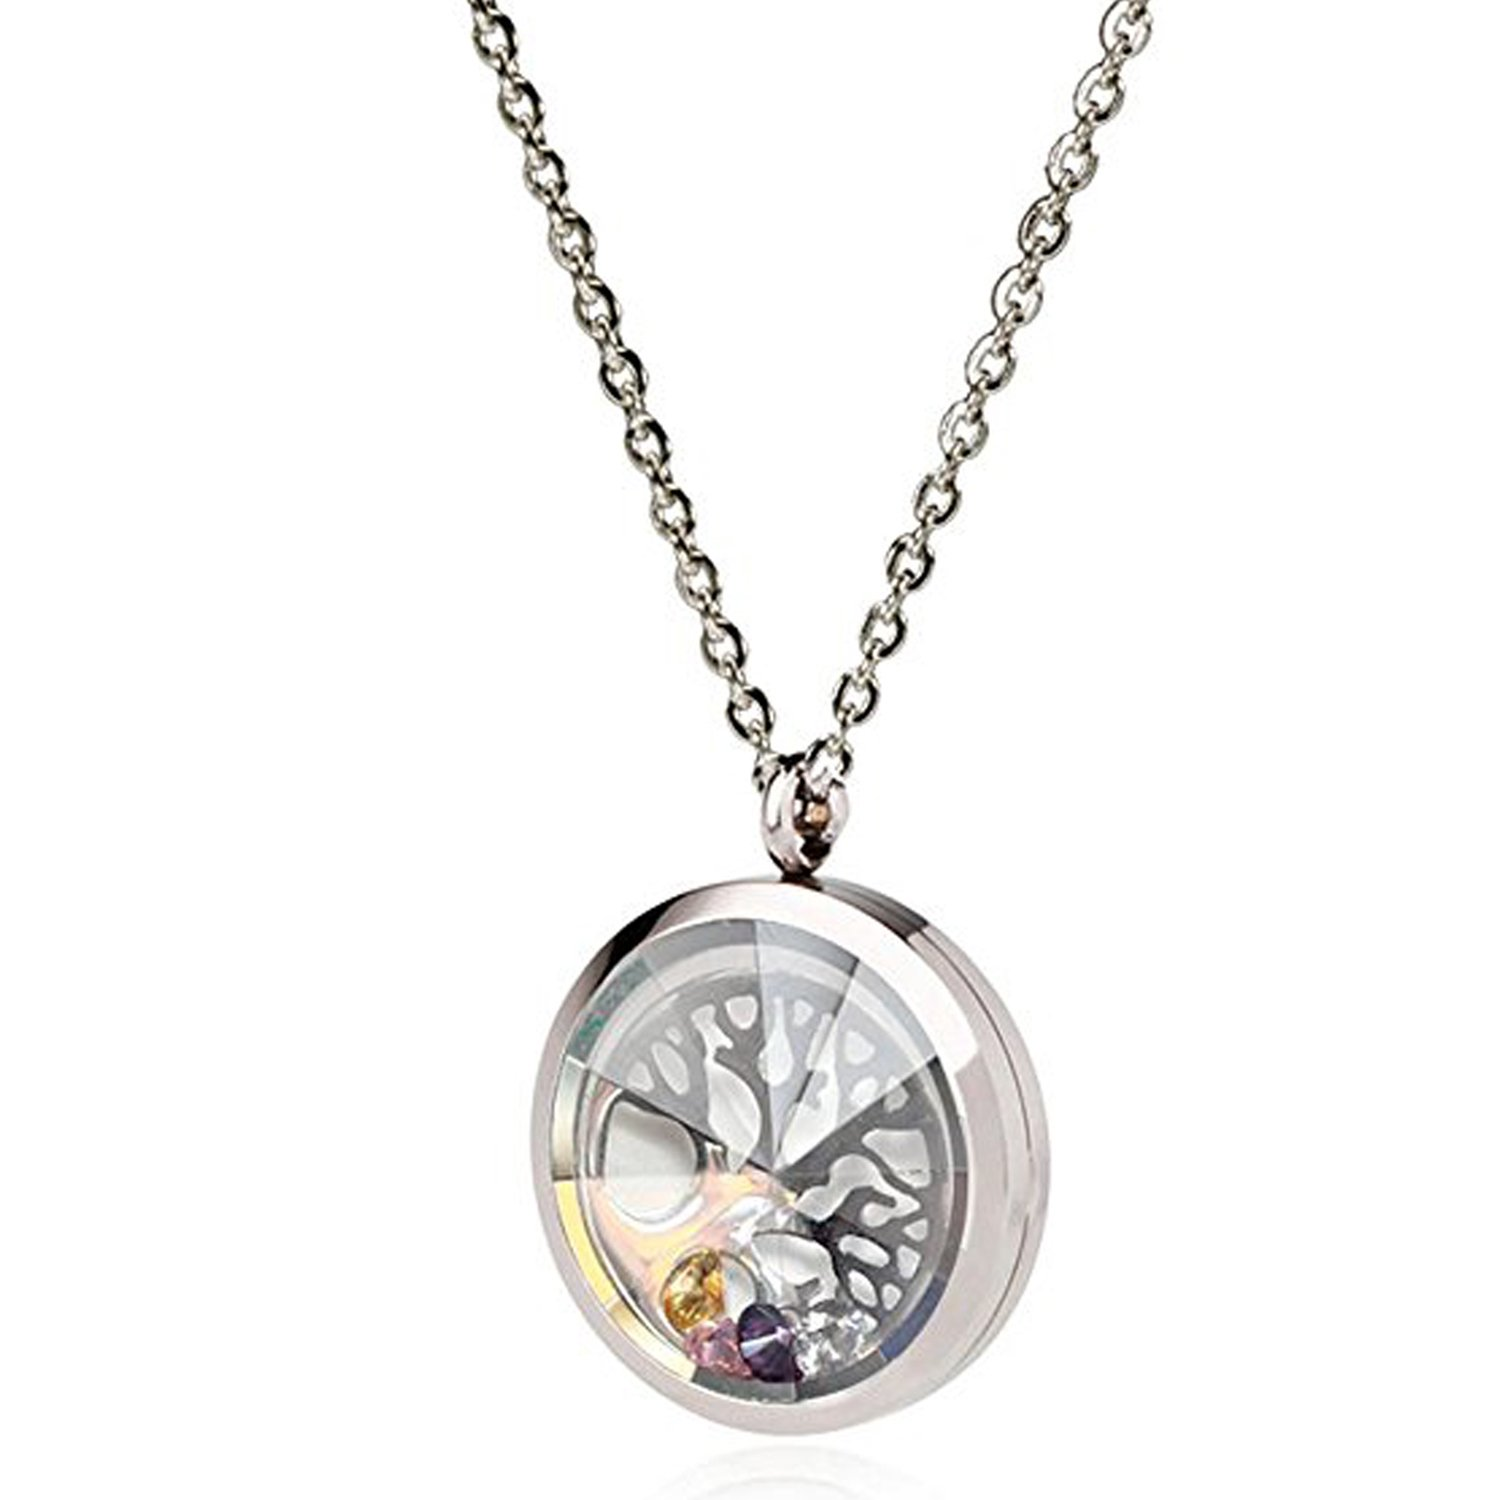 EVERLEAD Living Memory Floating Round Locket Pendant Necklace 316L Stainless Steel Toughened Glass Free Chain and Zircon (Screw style 30mm(angular lid -2)) by EVERLEAD